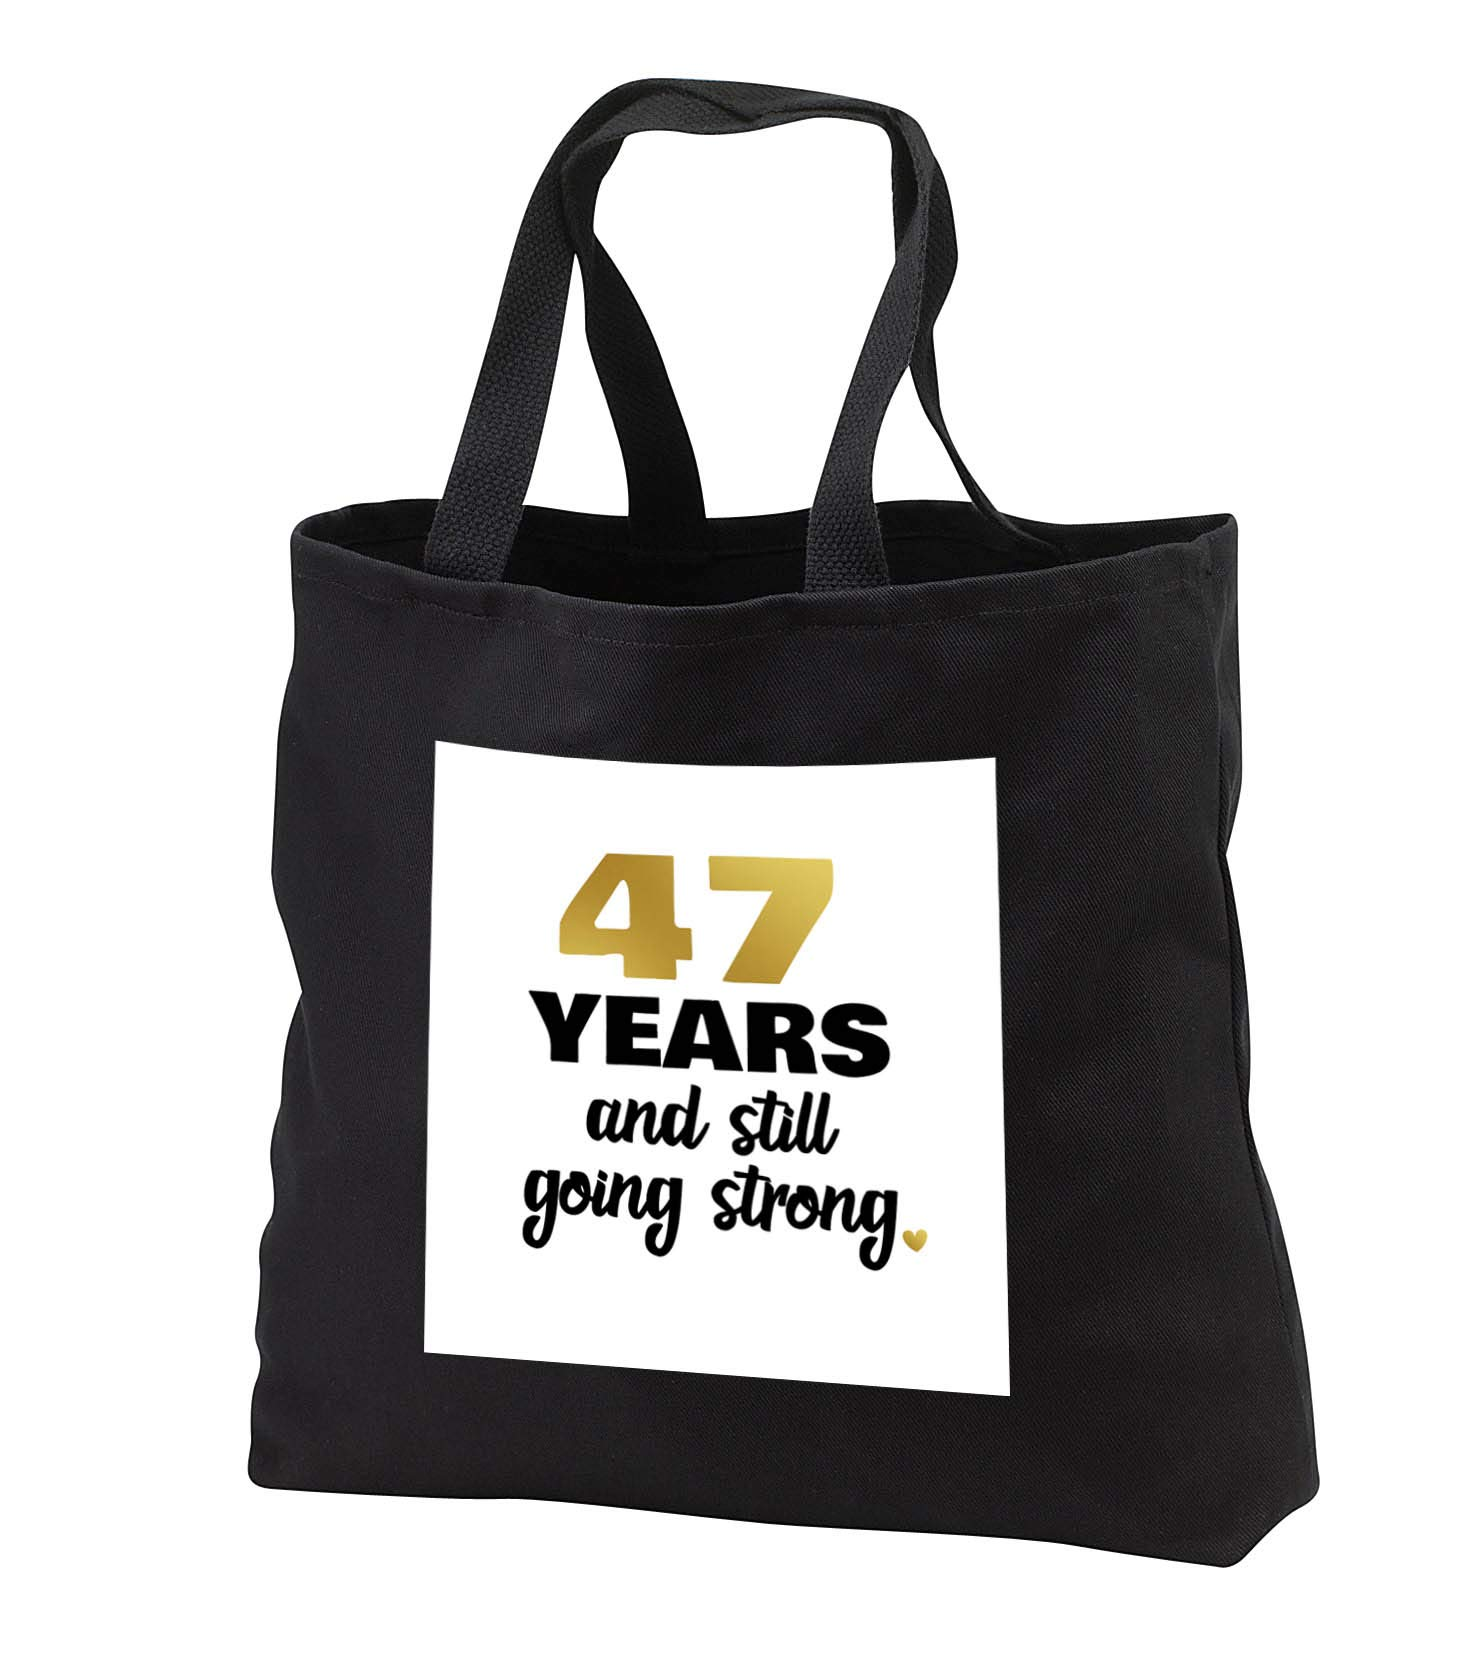 Janna Salak Designs Anniversary - 47 Year Anniversary Still Going Strong 47th Wedding Anniversary Gift - Tote Bags - Black Tote Bag JUMBO 20w x 15h x 5d (tb_289681_3)